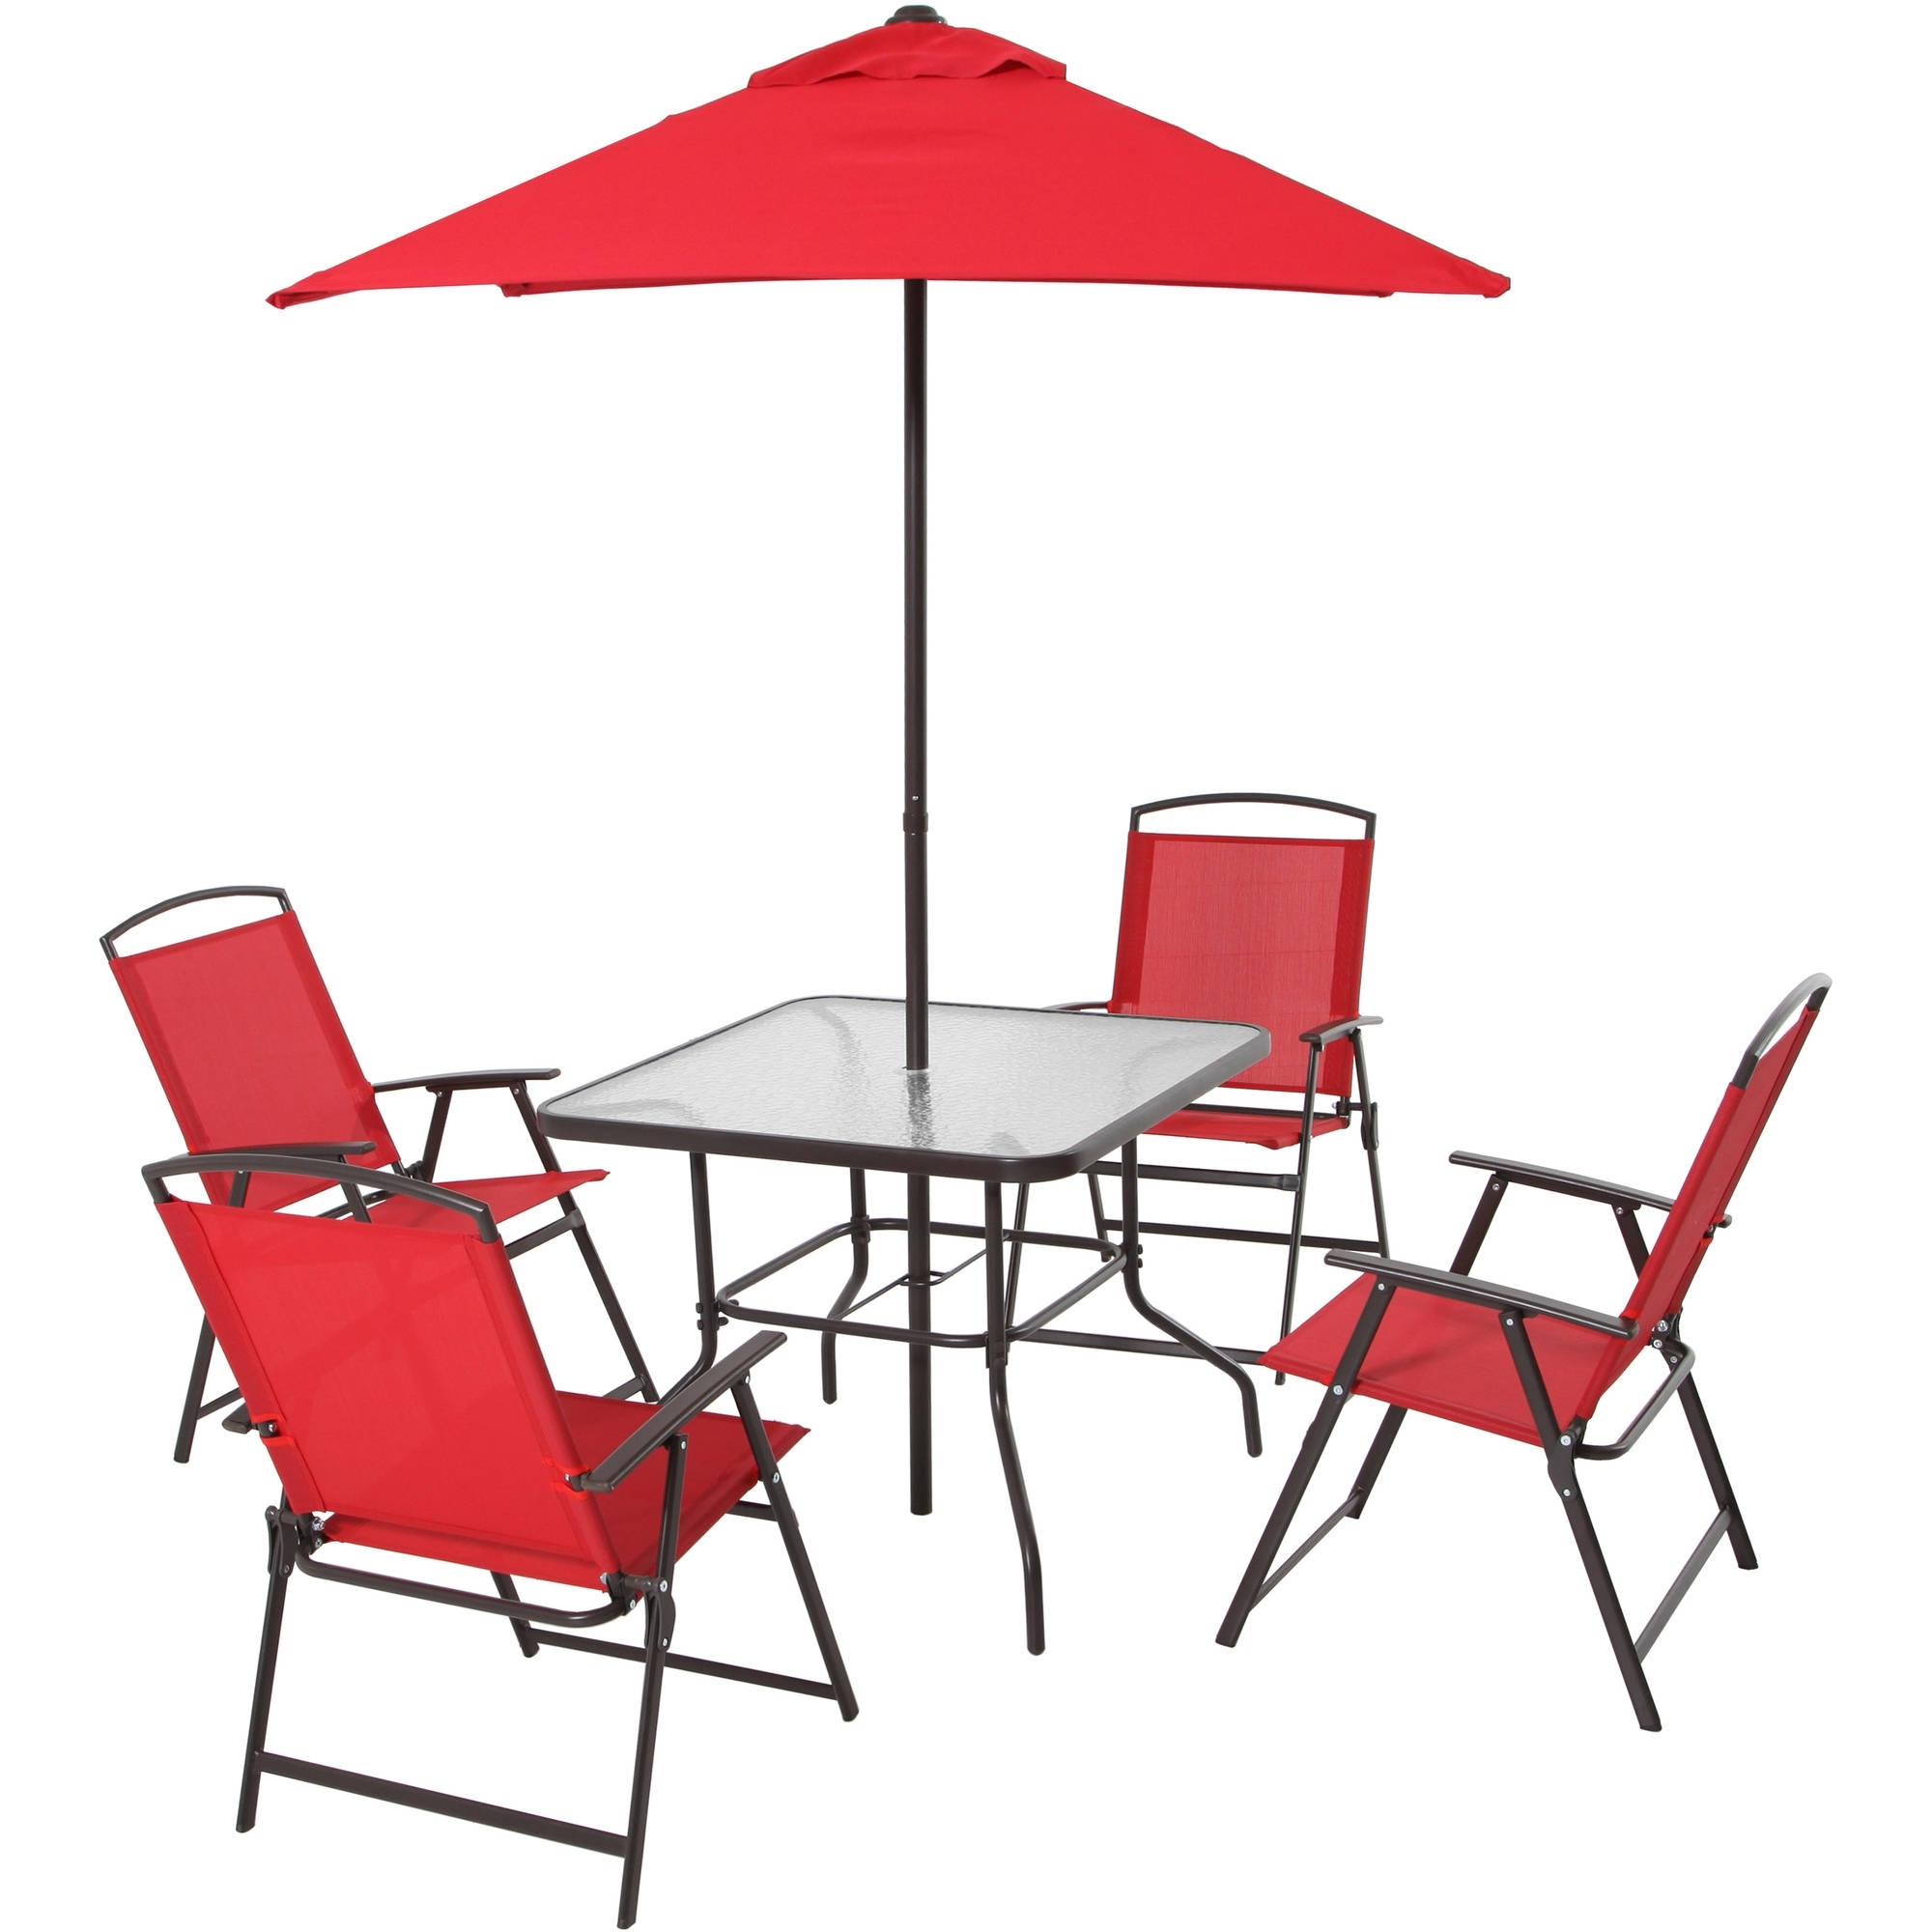 Widely Used Patio Dining Set Folding Chairs Outdoor Furniture Metal Frame With Outdoor Dining Table And Chairs Sets (View 15 of 25)